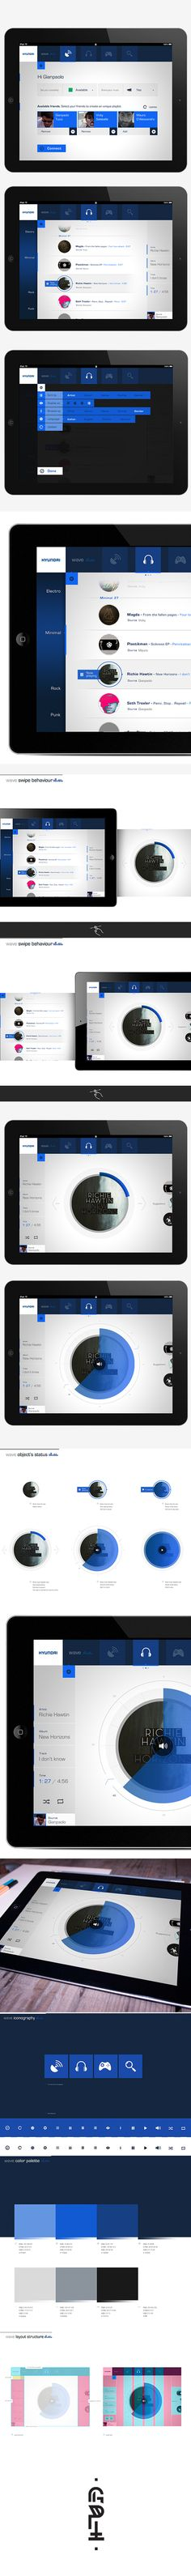 wave |||| iPad application on Behance